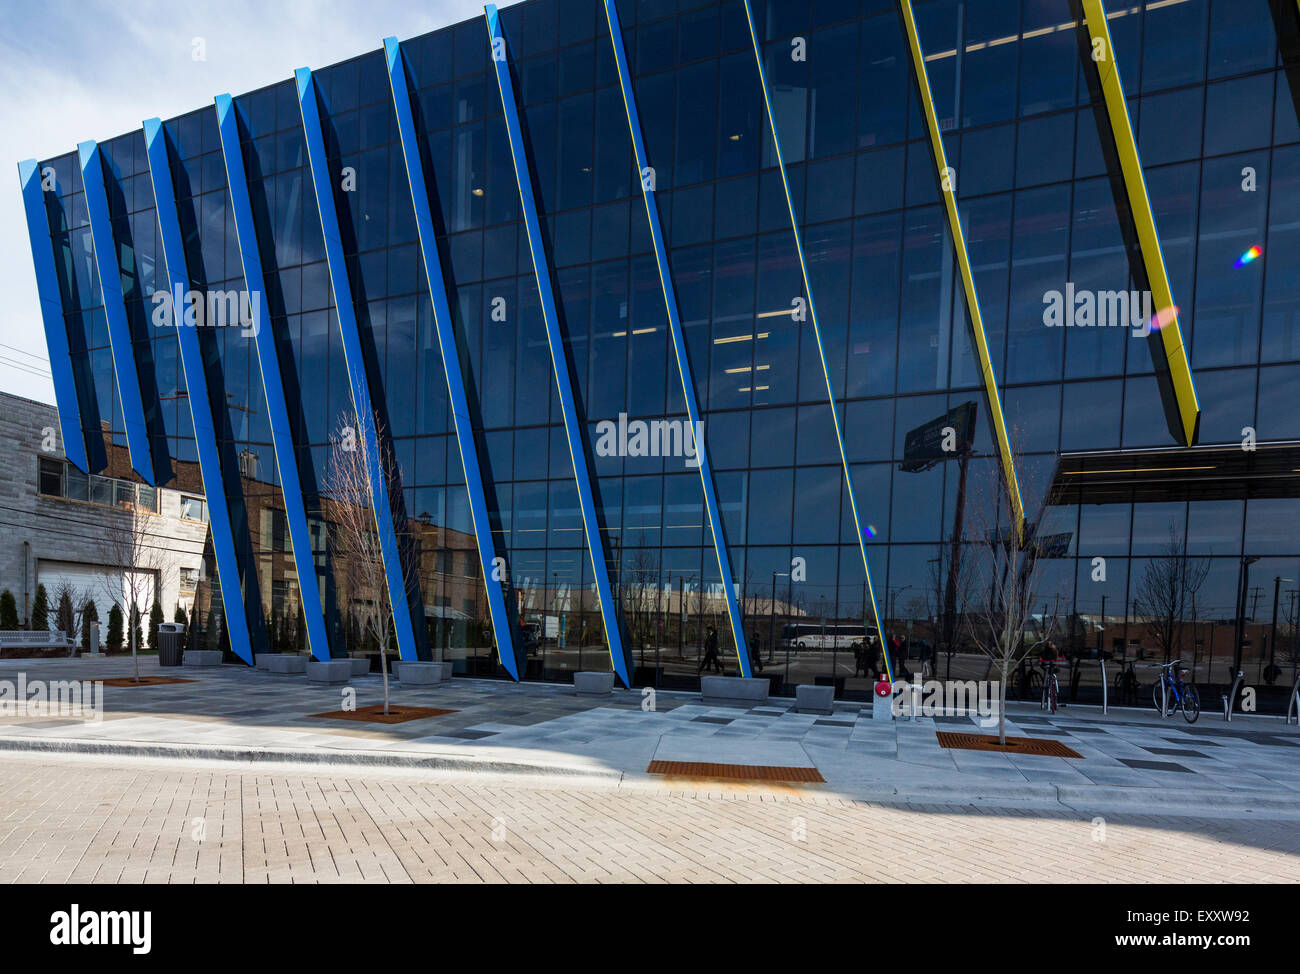 exterior, El Centro urban campus,  Northeastern Illinois University, Avondale, Chicago, Illinois, USA - Stock Image